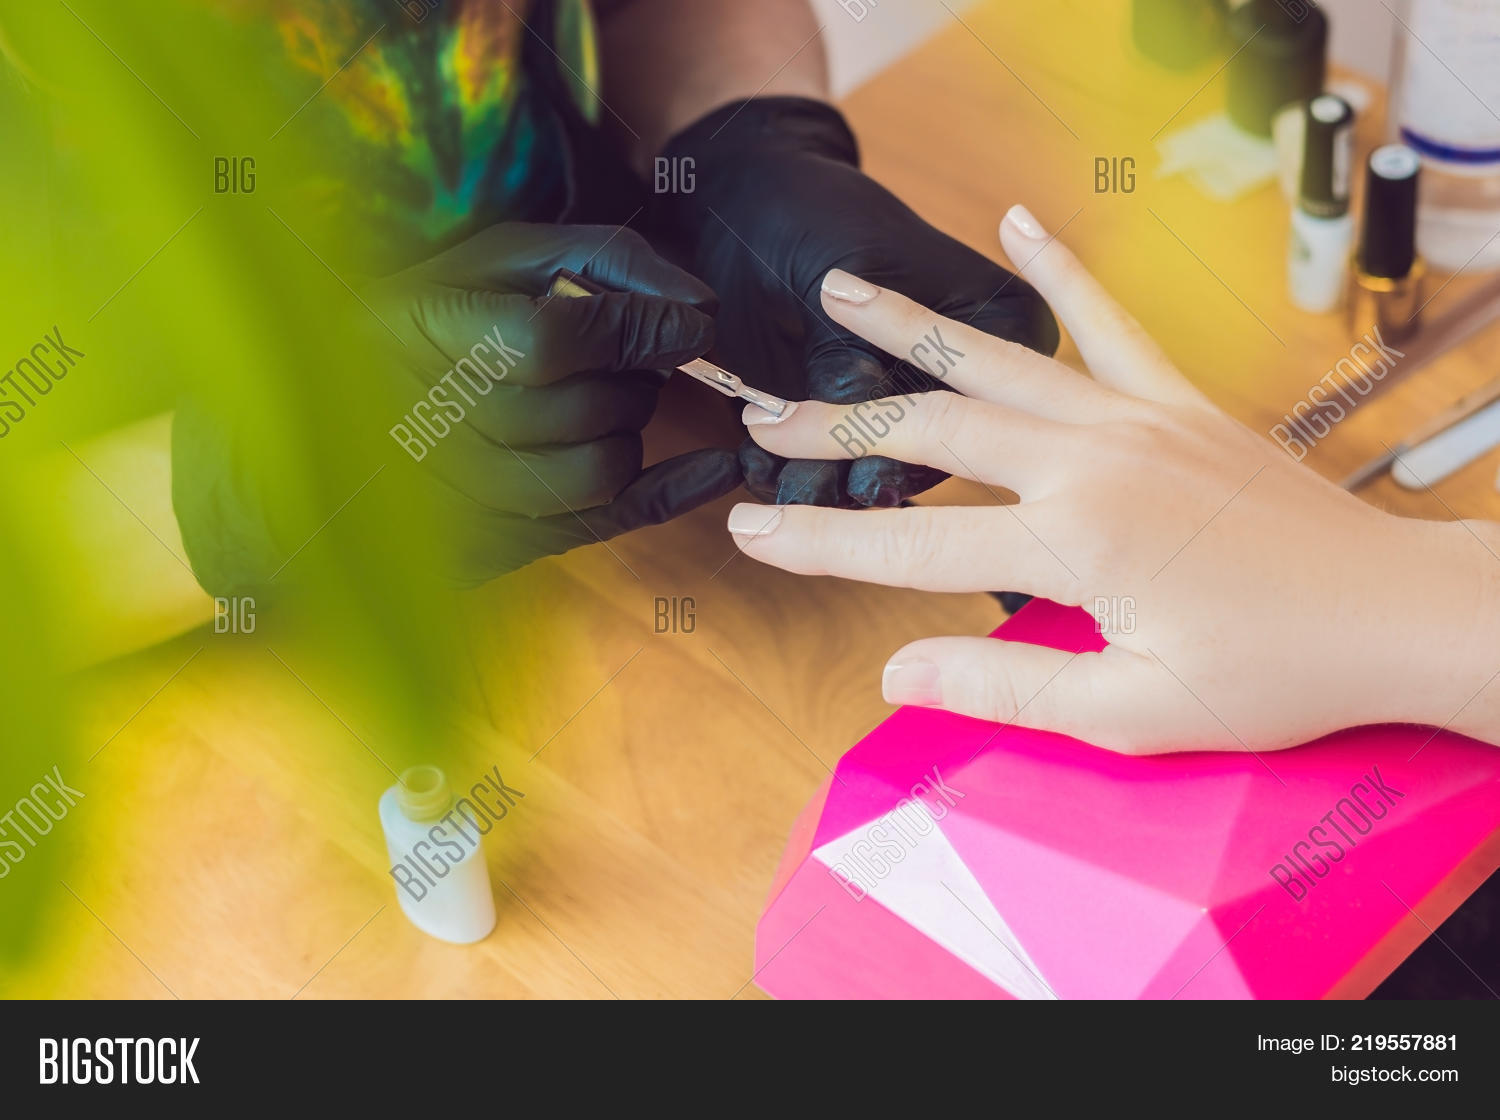 Closeup Finger Nail Care By Image & Photo | Bigstock